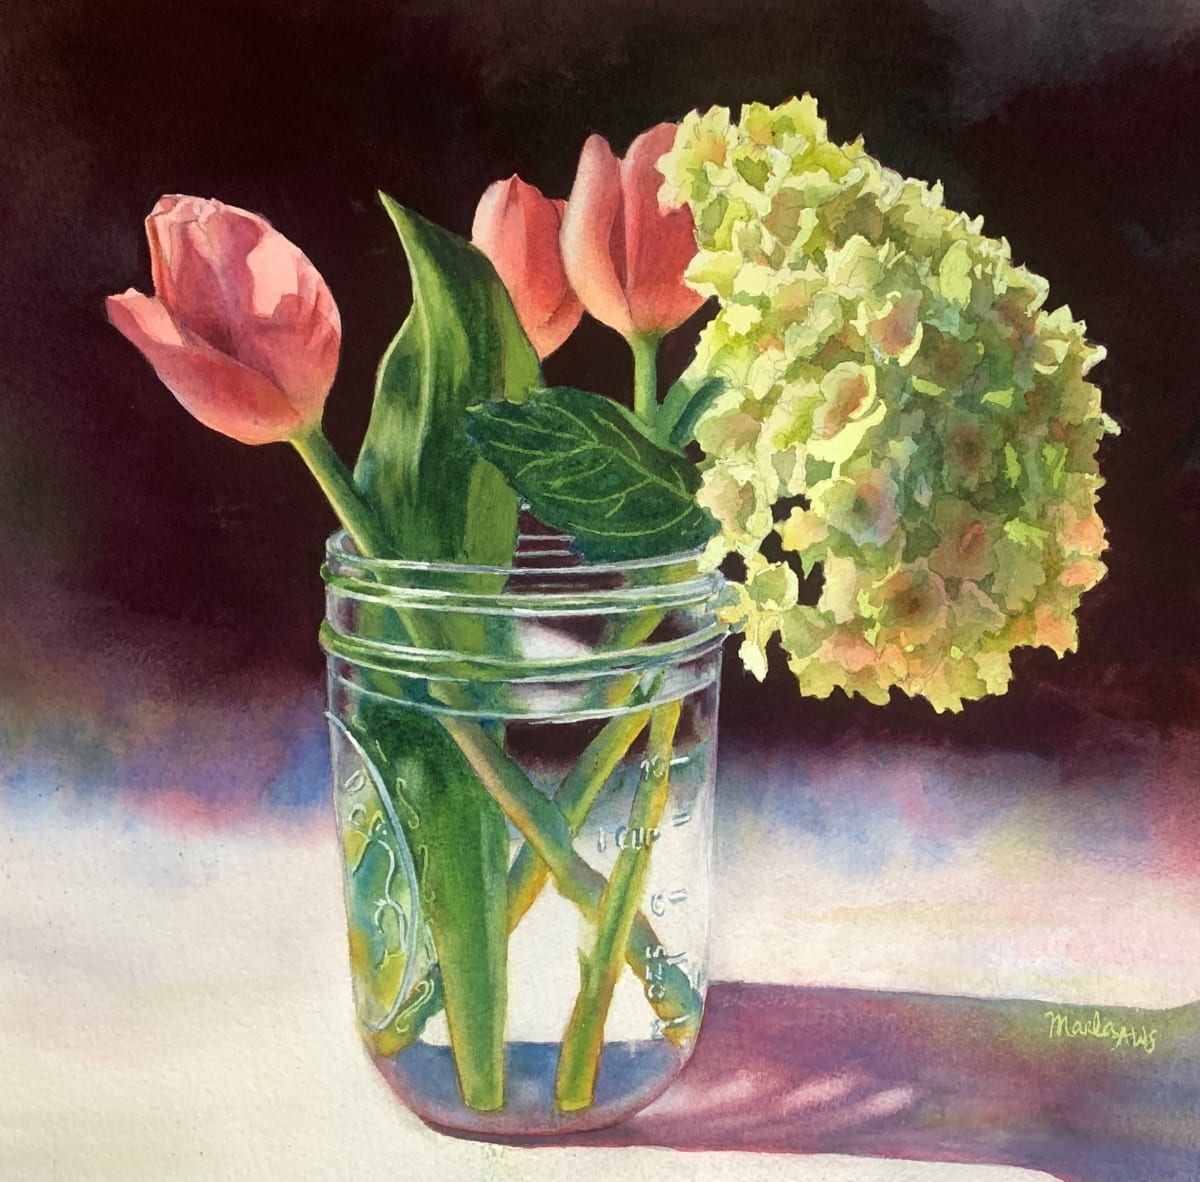 Tulips and Hydrangea by Marla Greenfield